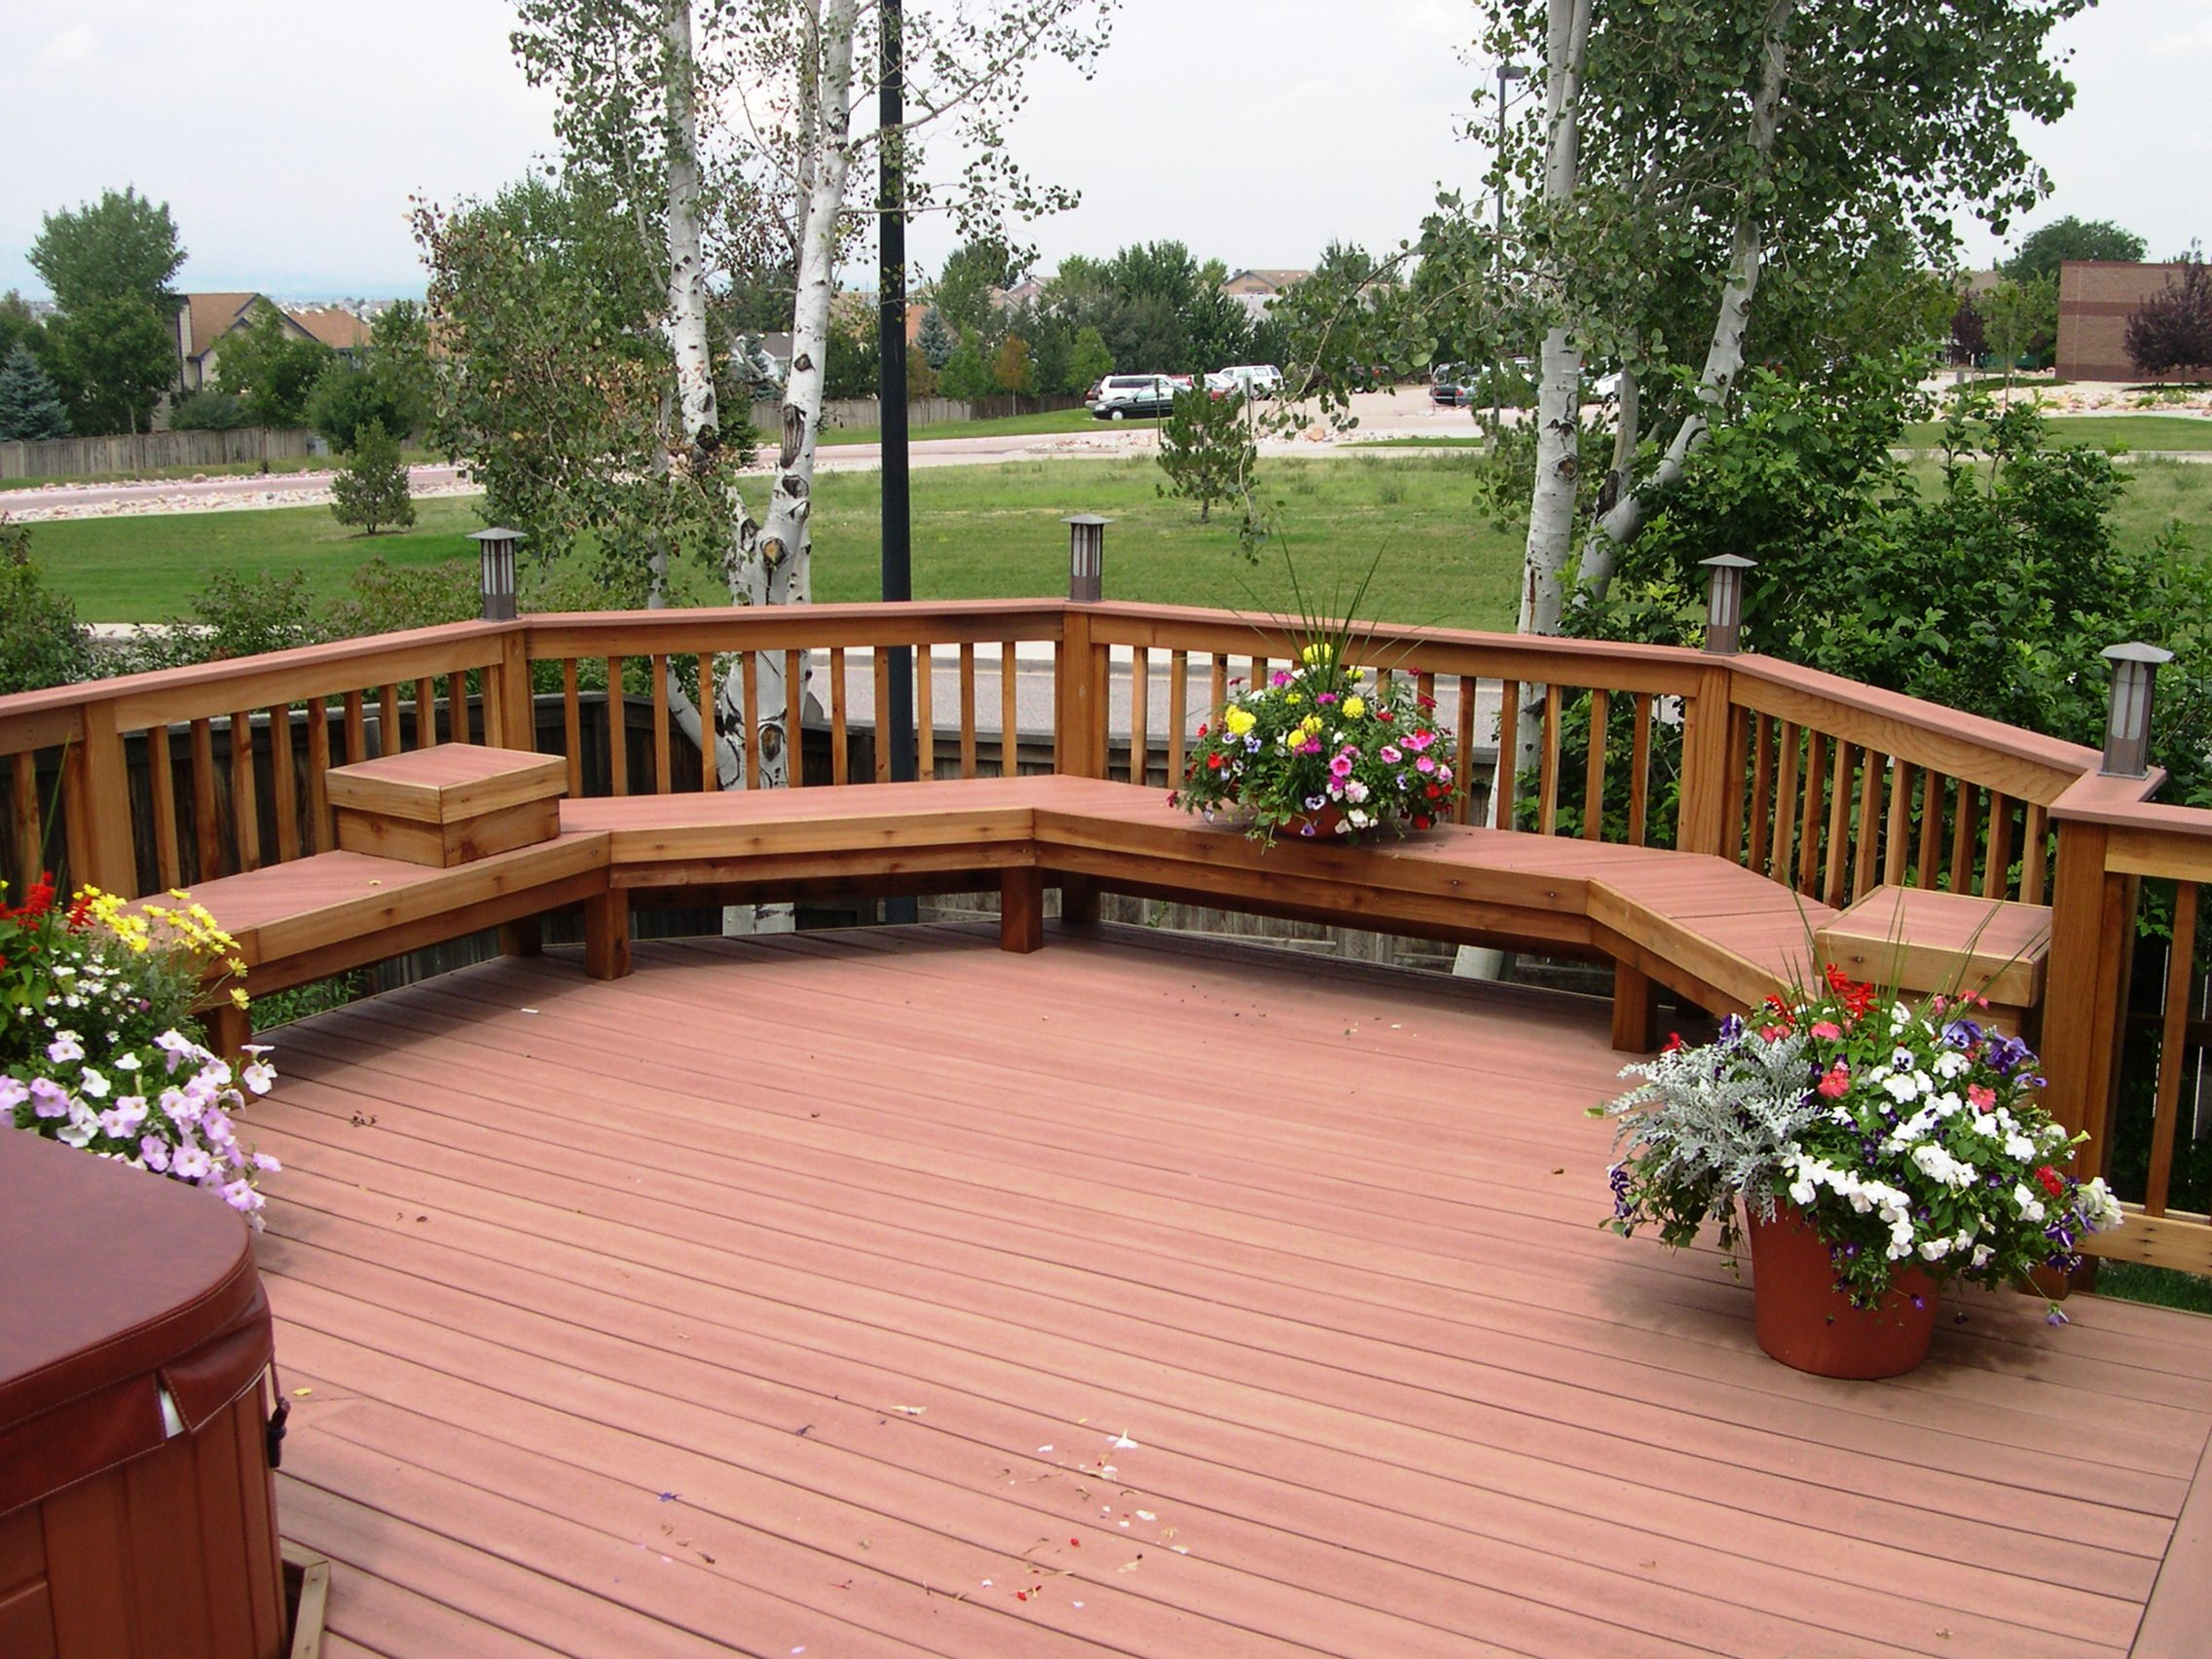 Awesome home deck designs homesfeed for Awesome home design ideas